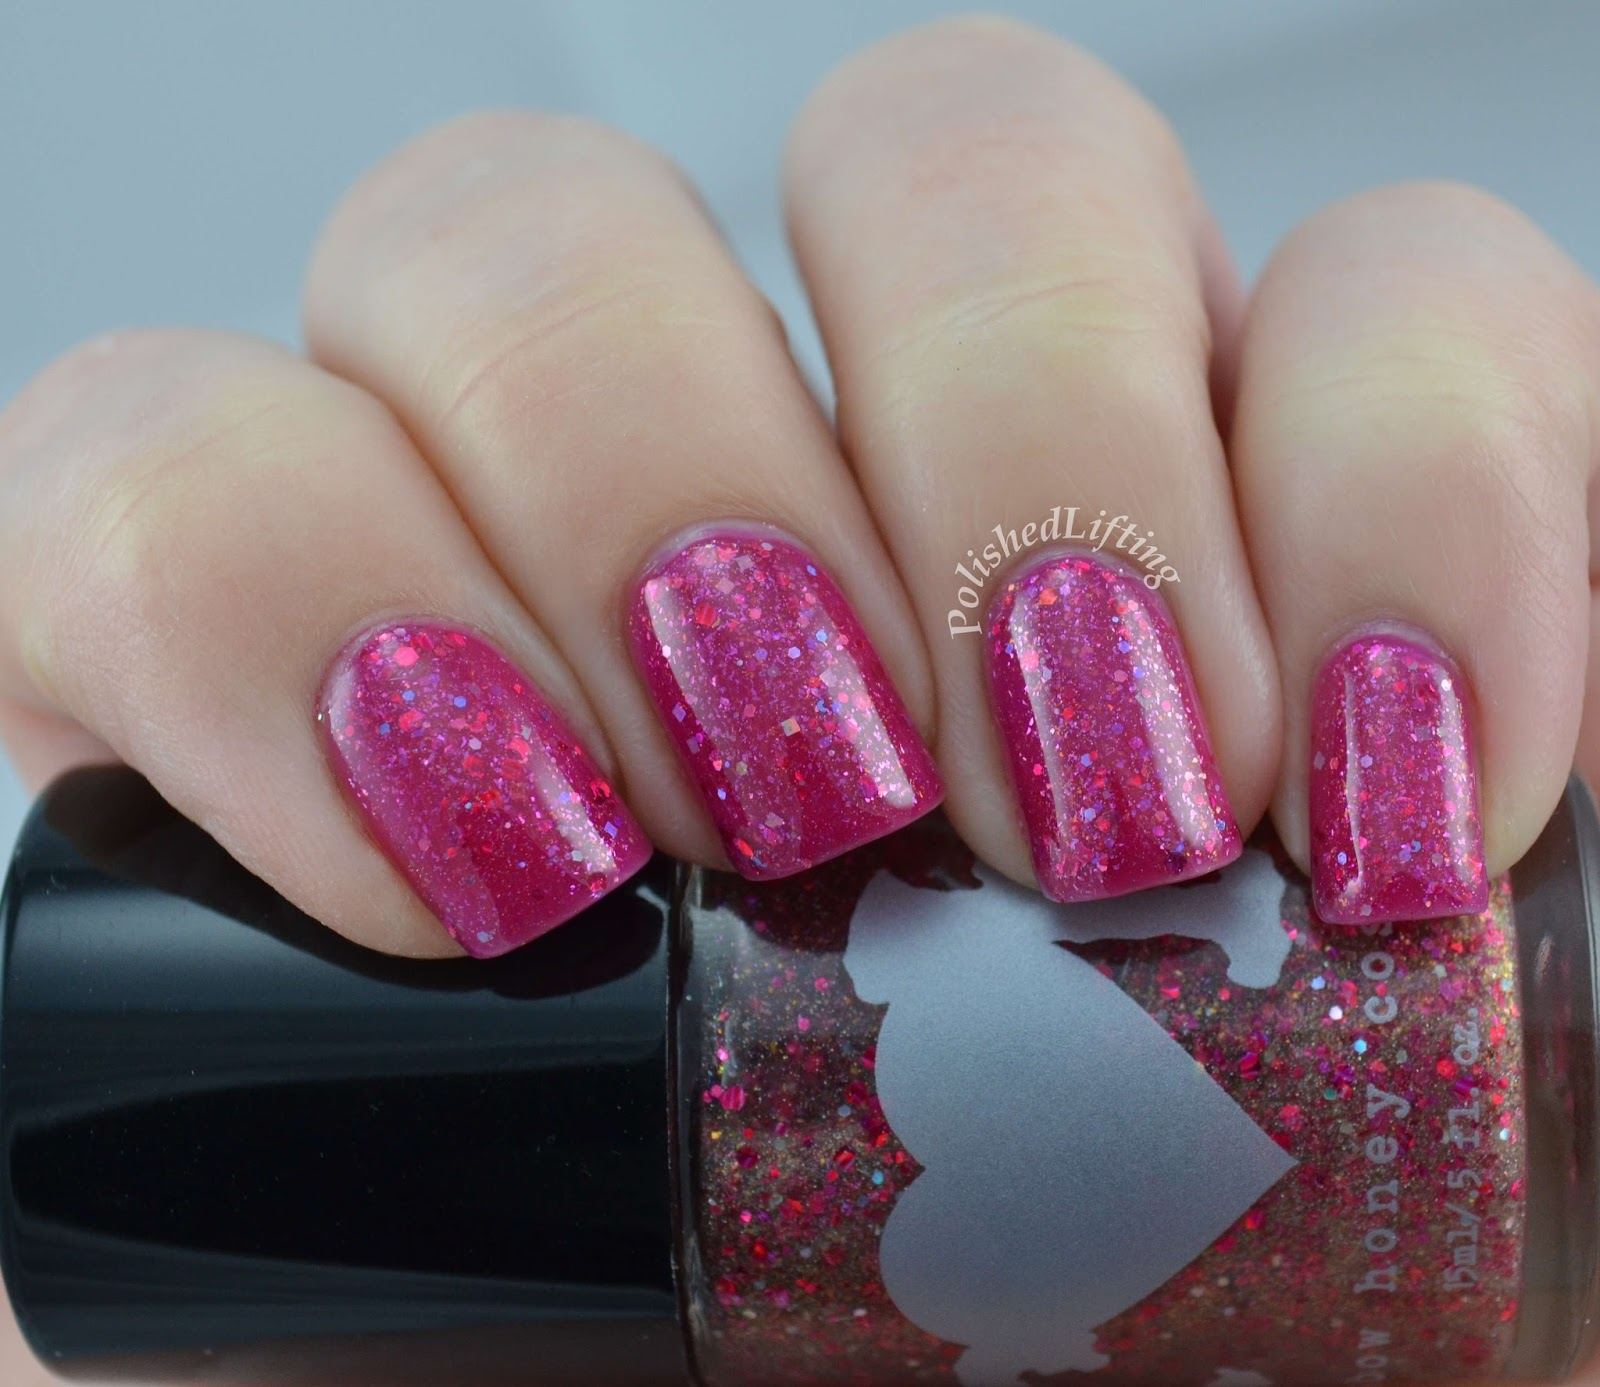 Rainbow Honey XOXO Stellar Treat Zoya Paloma